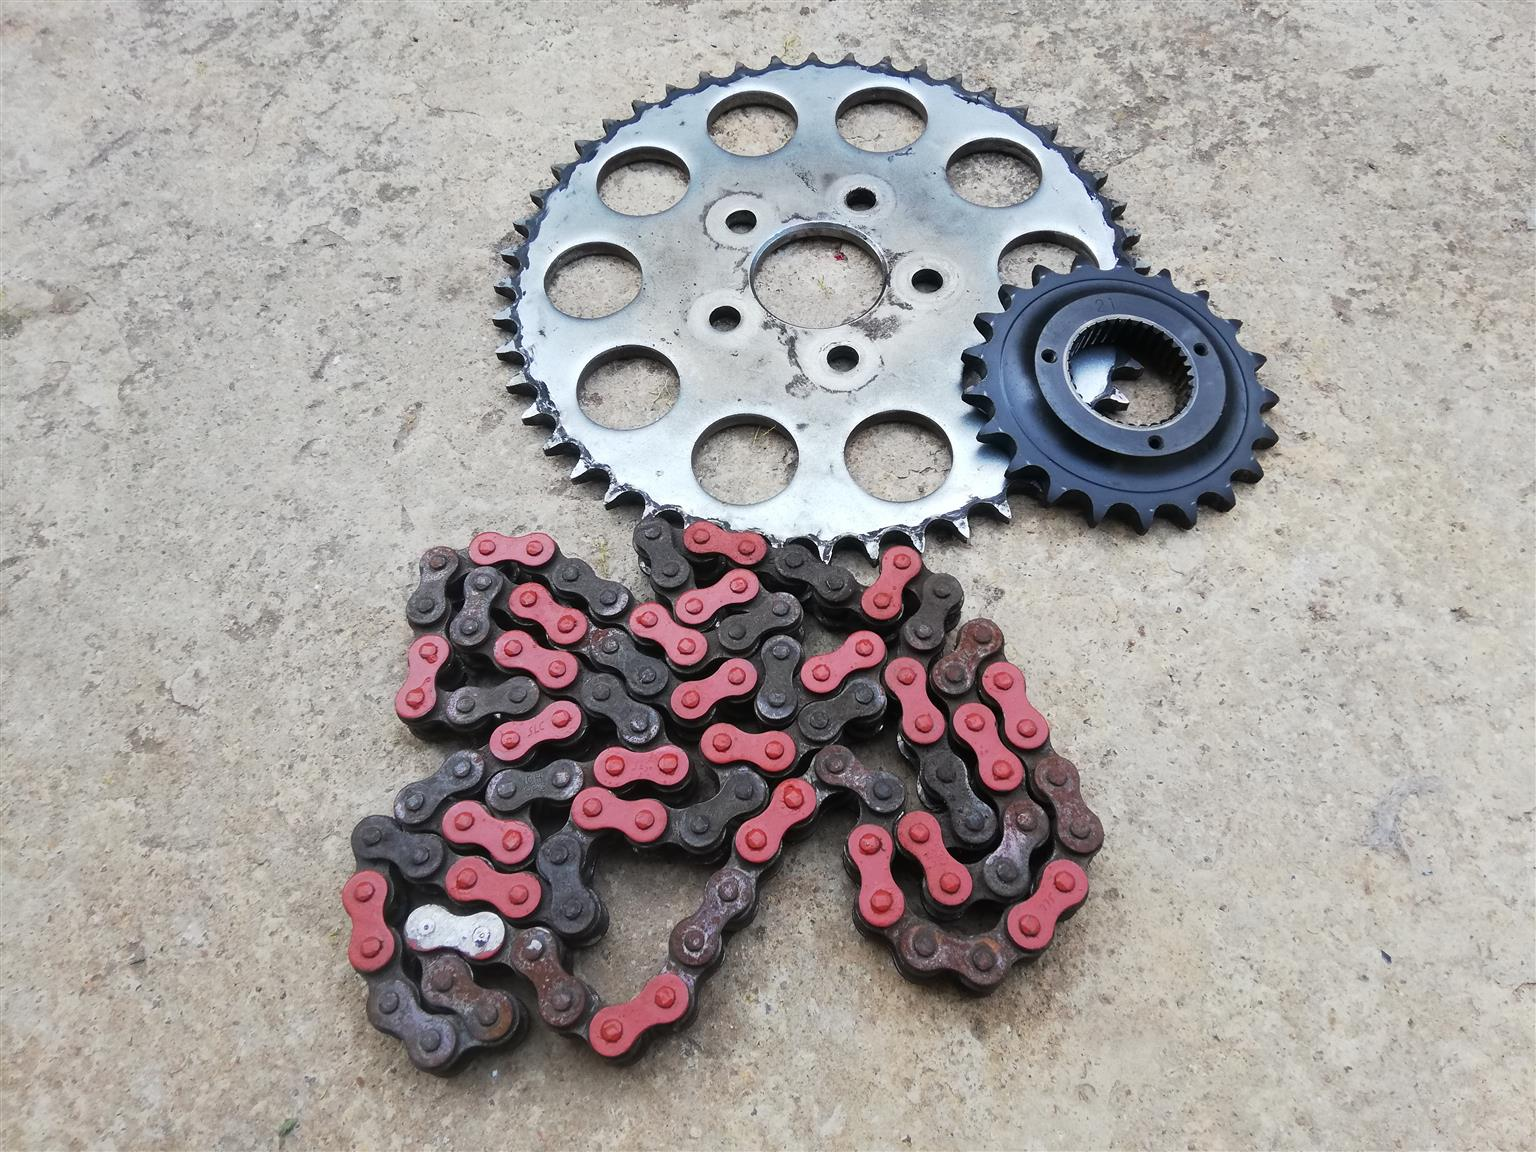 Harley Davidson Sportster chain and sprocket spare parts